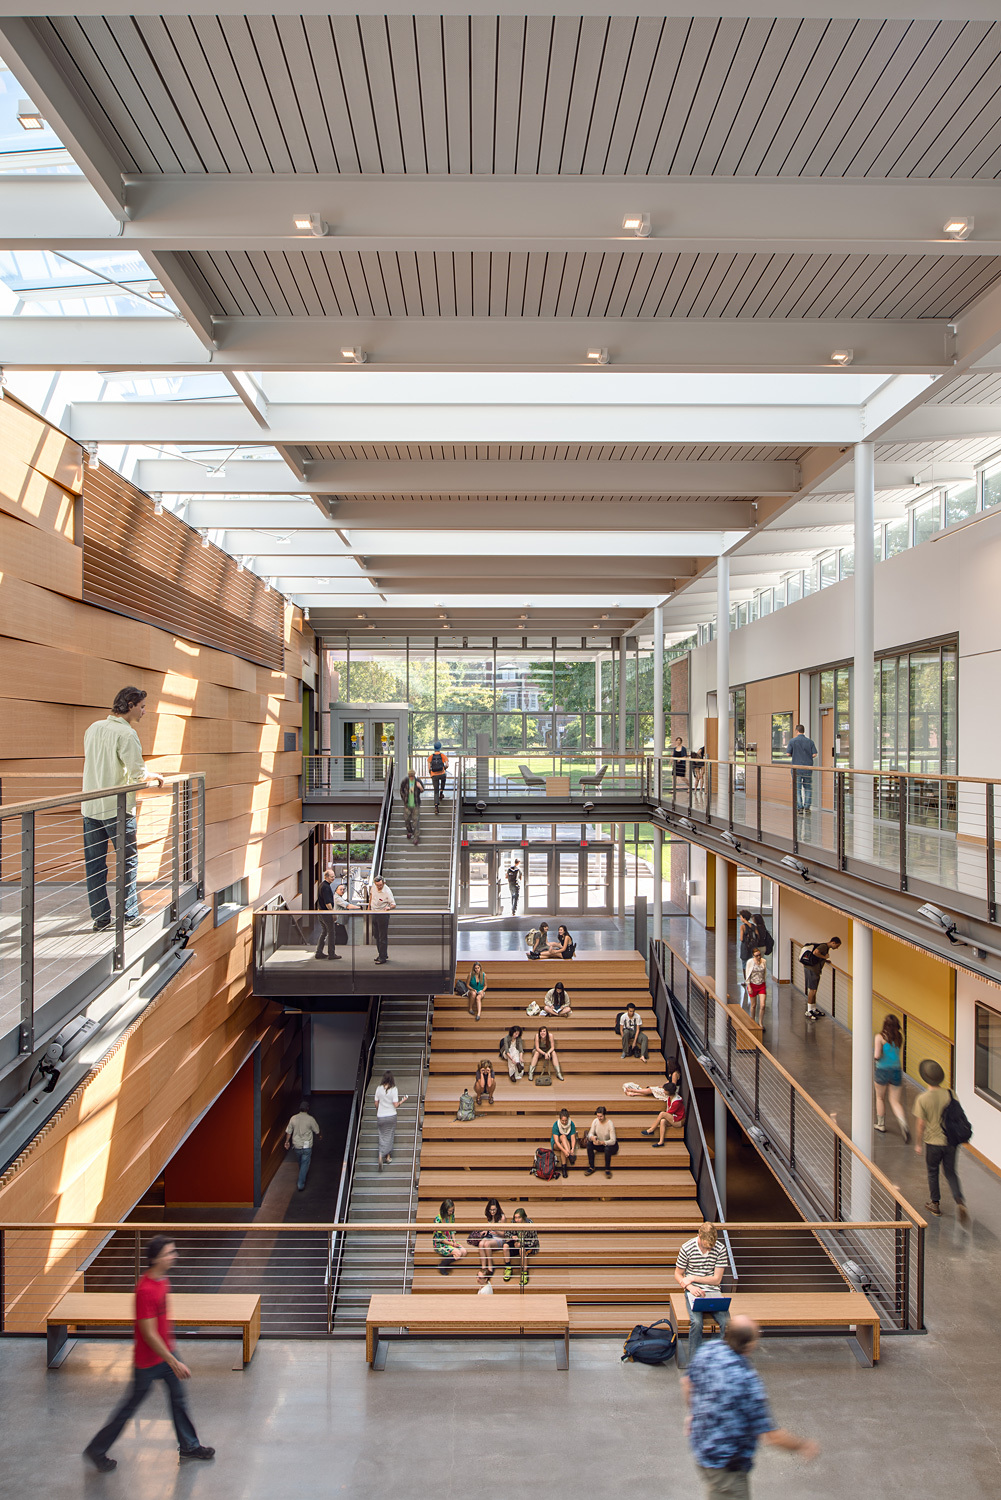 Winners of the aia cae 2015 education facility design awards for College building design